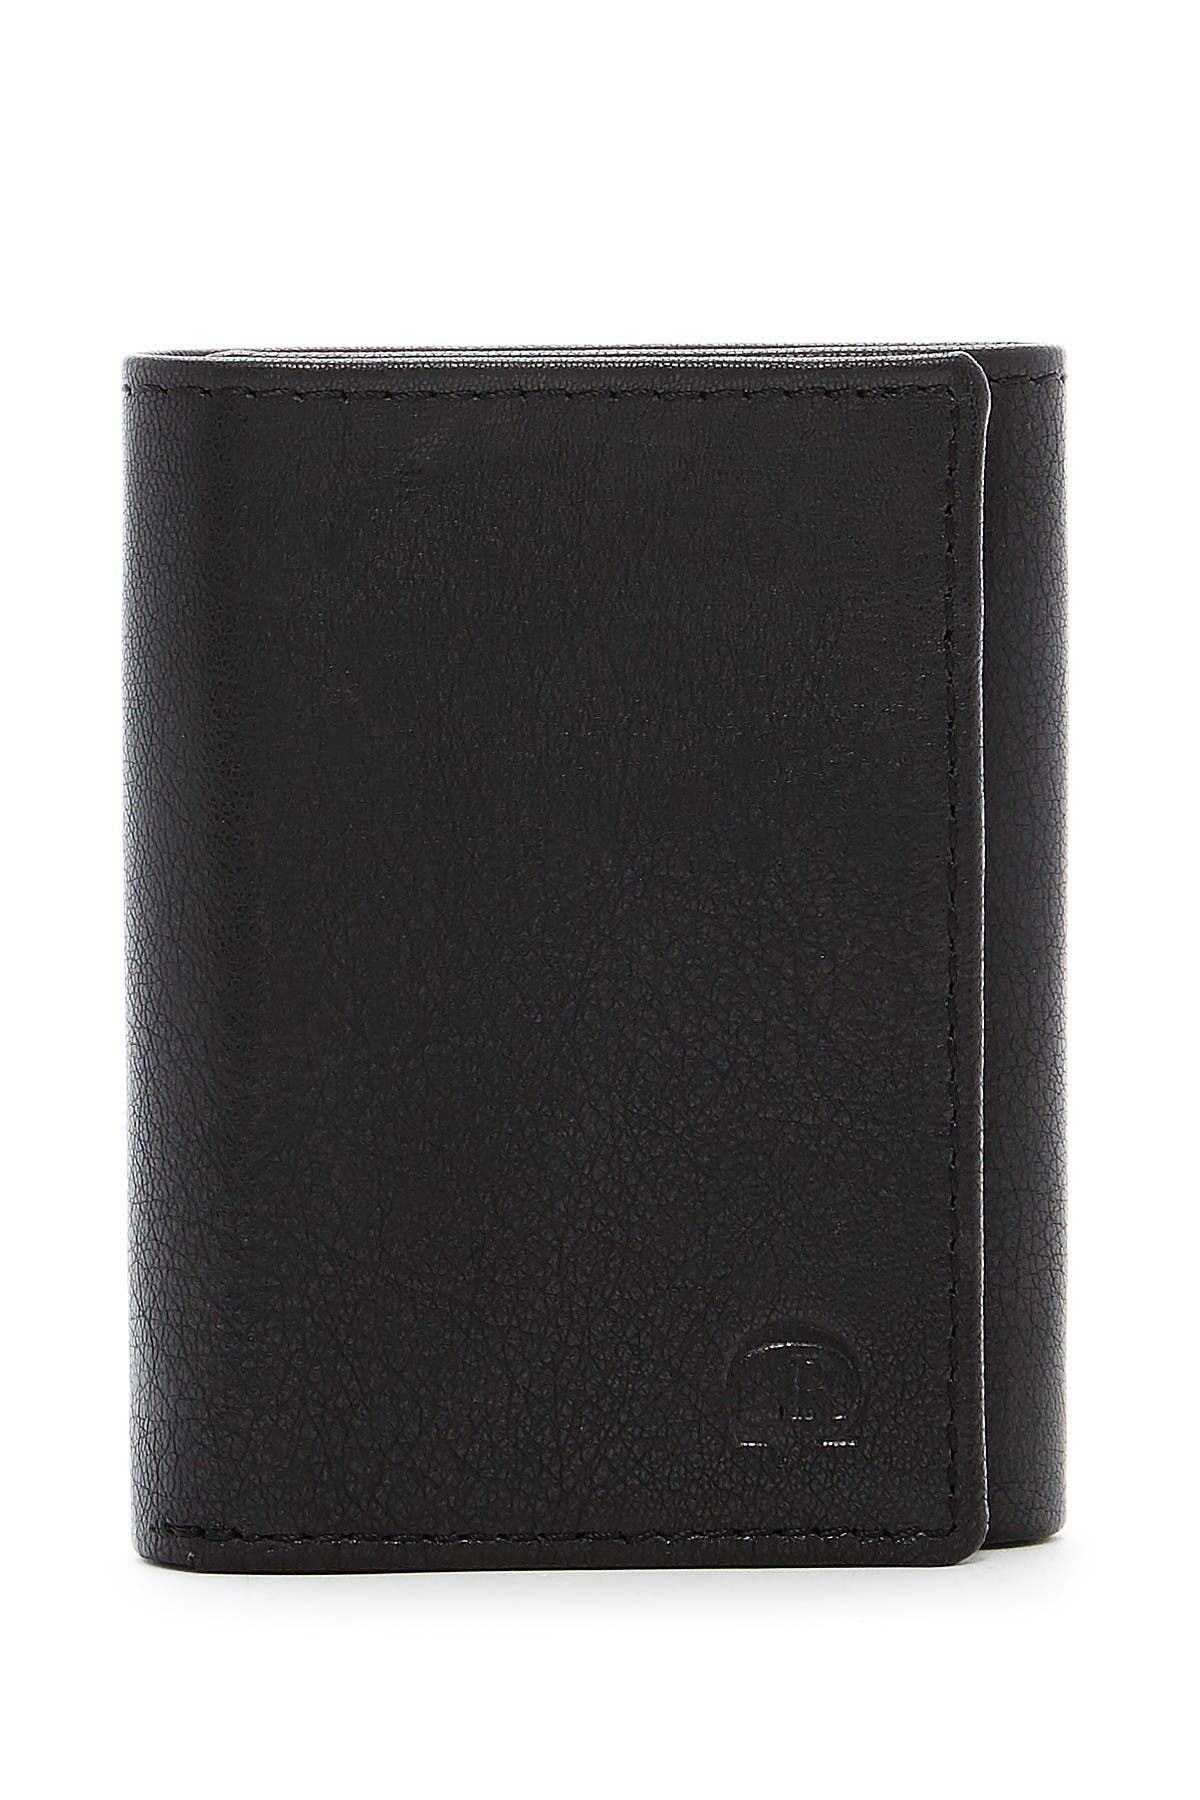 Image of Robert Graham Magada Trifold Wallet